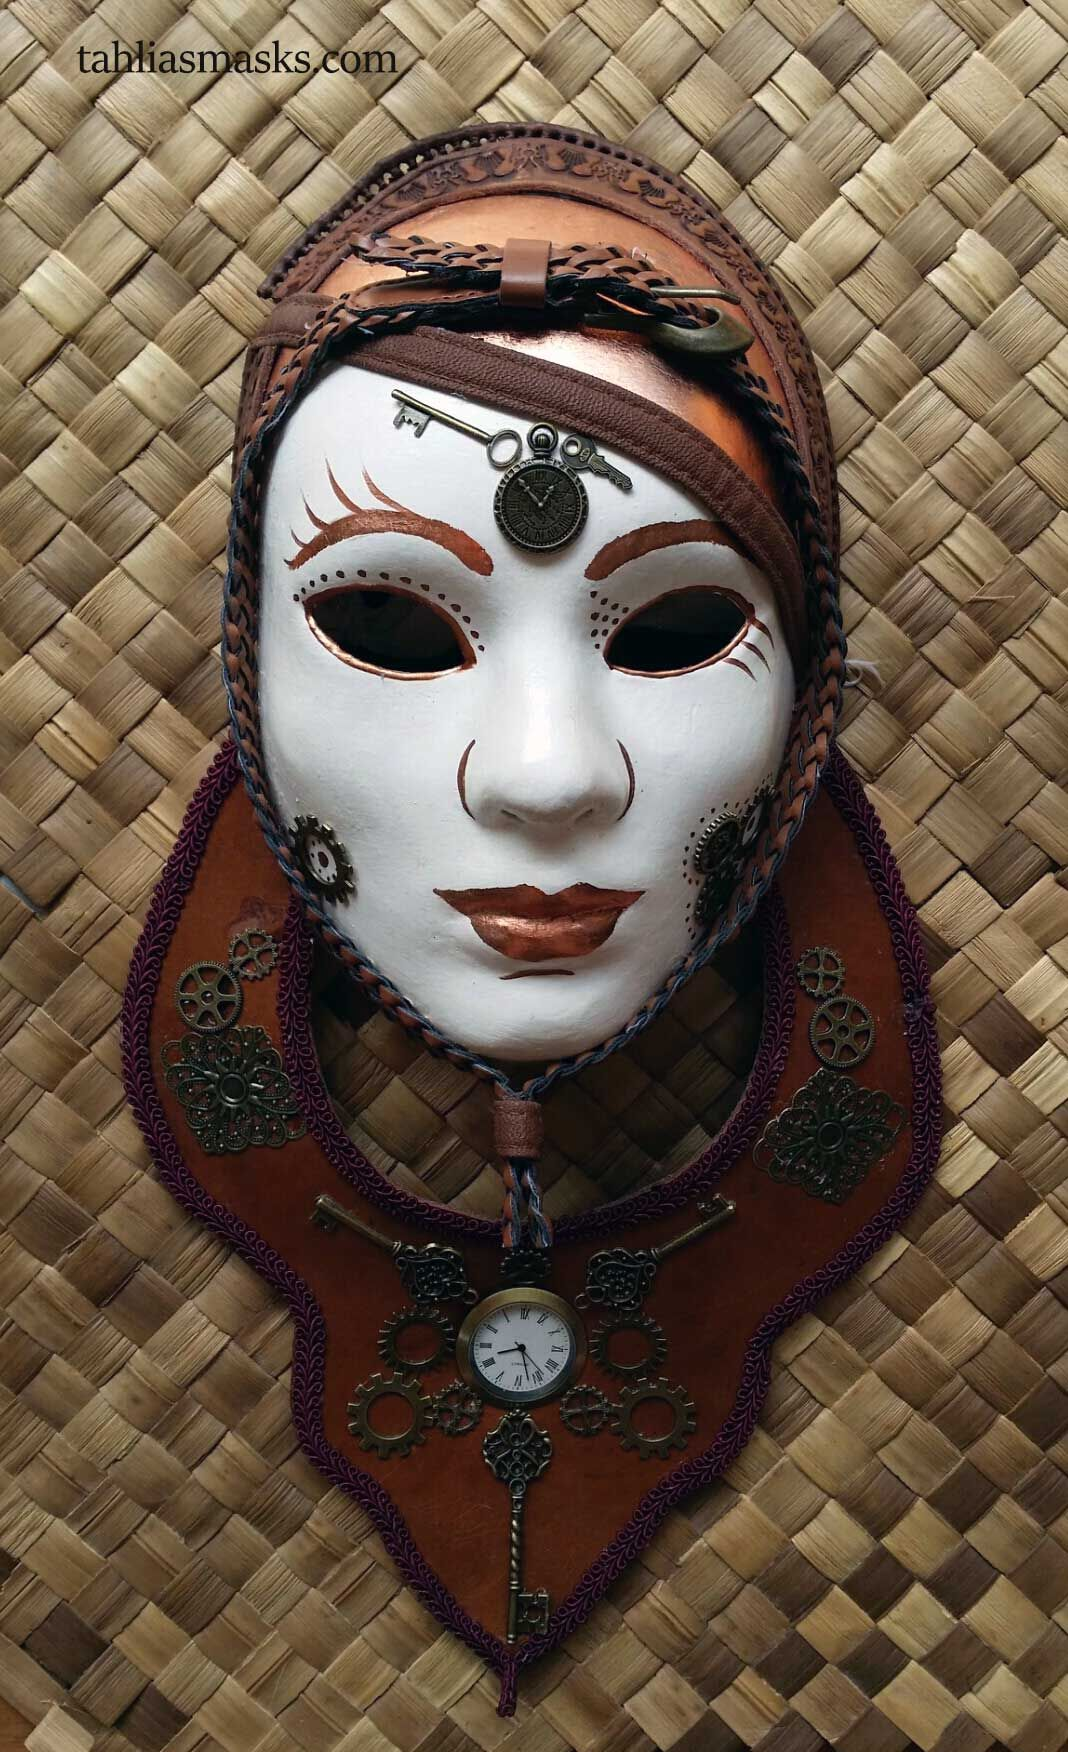 STEAM PUNK VENETIAN MASK WITH MONOCLE AND LEATHER, BRASS AND COPPER DETAILS